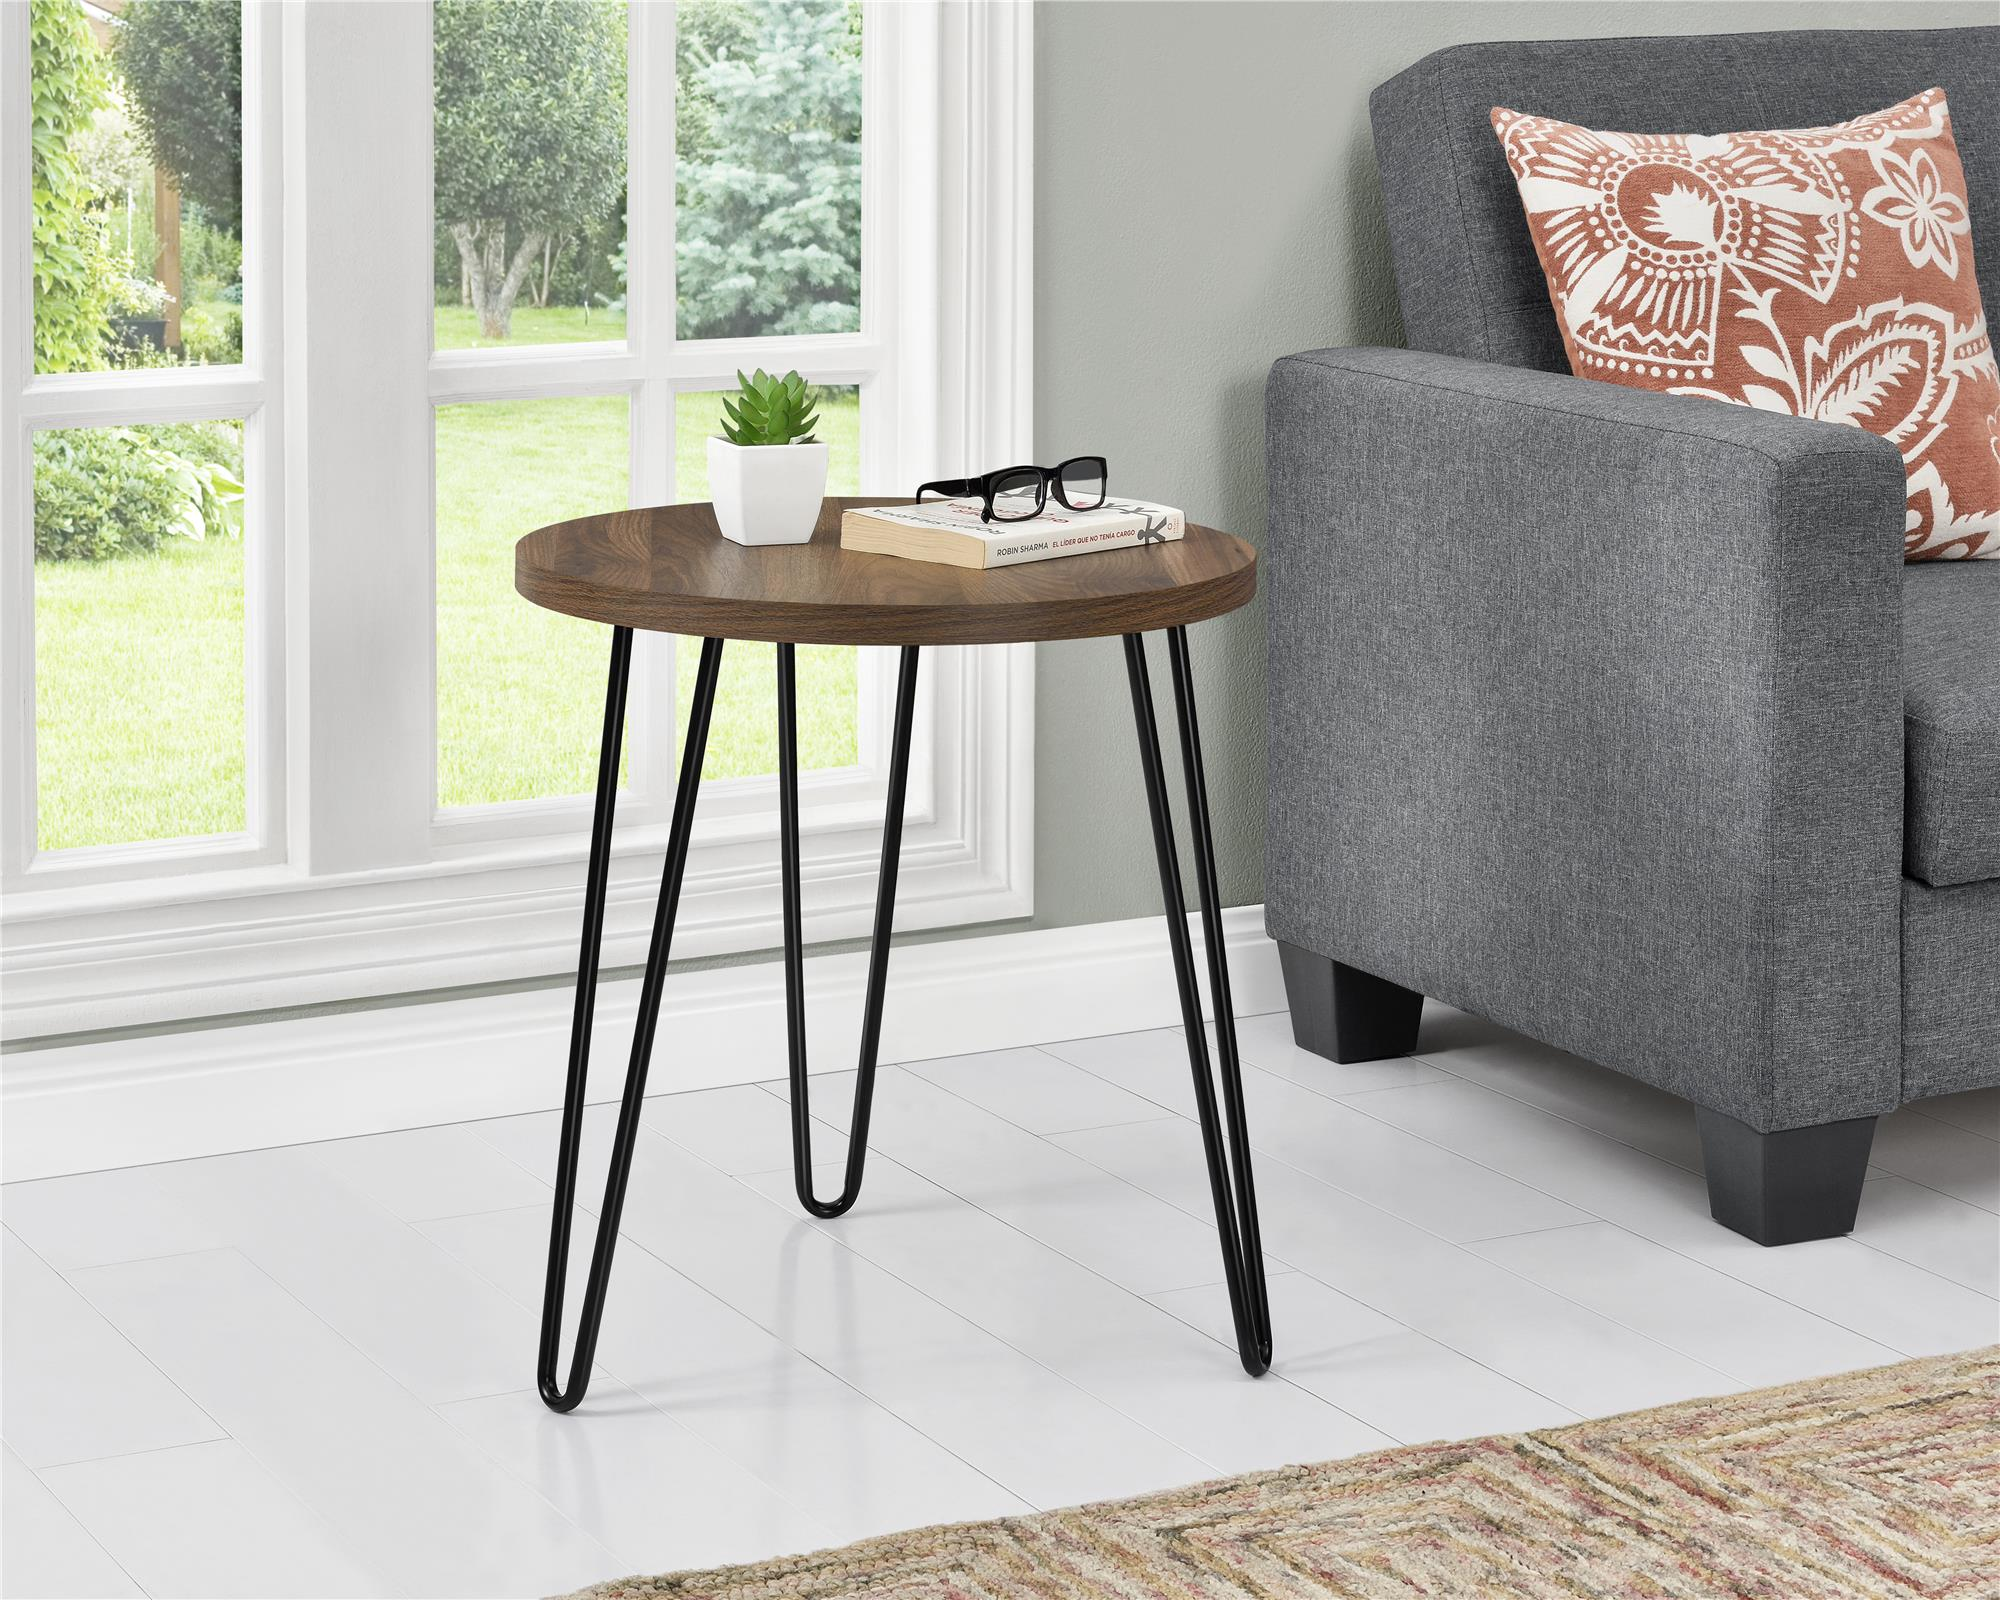 e1048f7d0af Ameriwood Home Owen Retro Round End Table